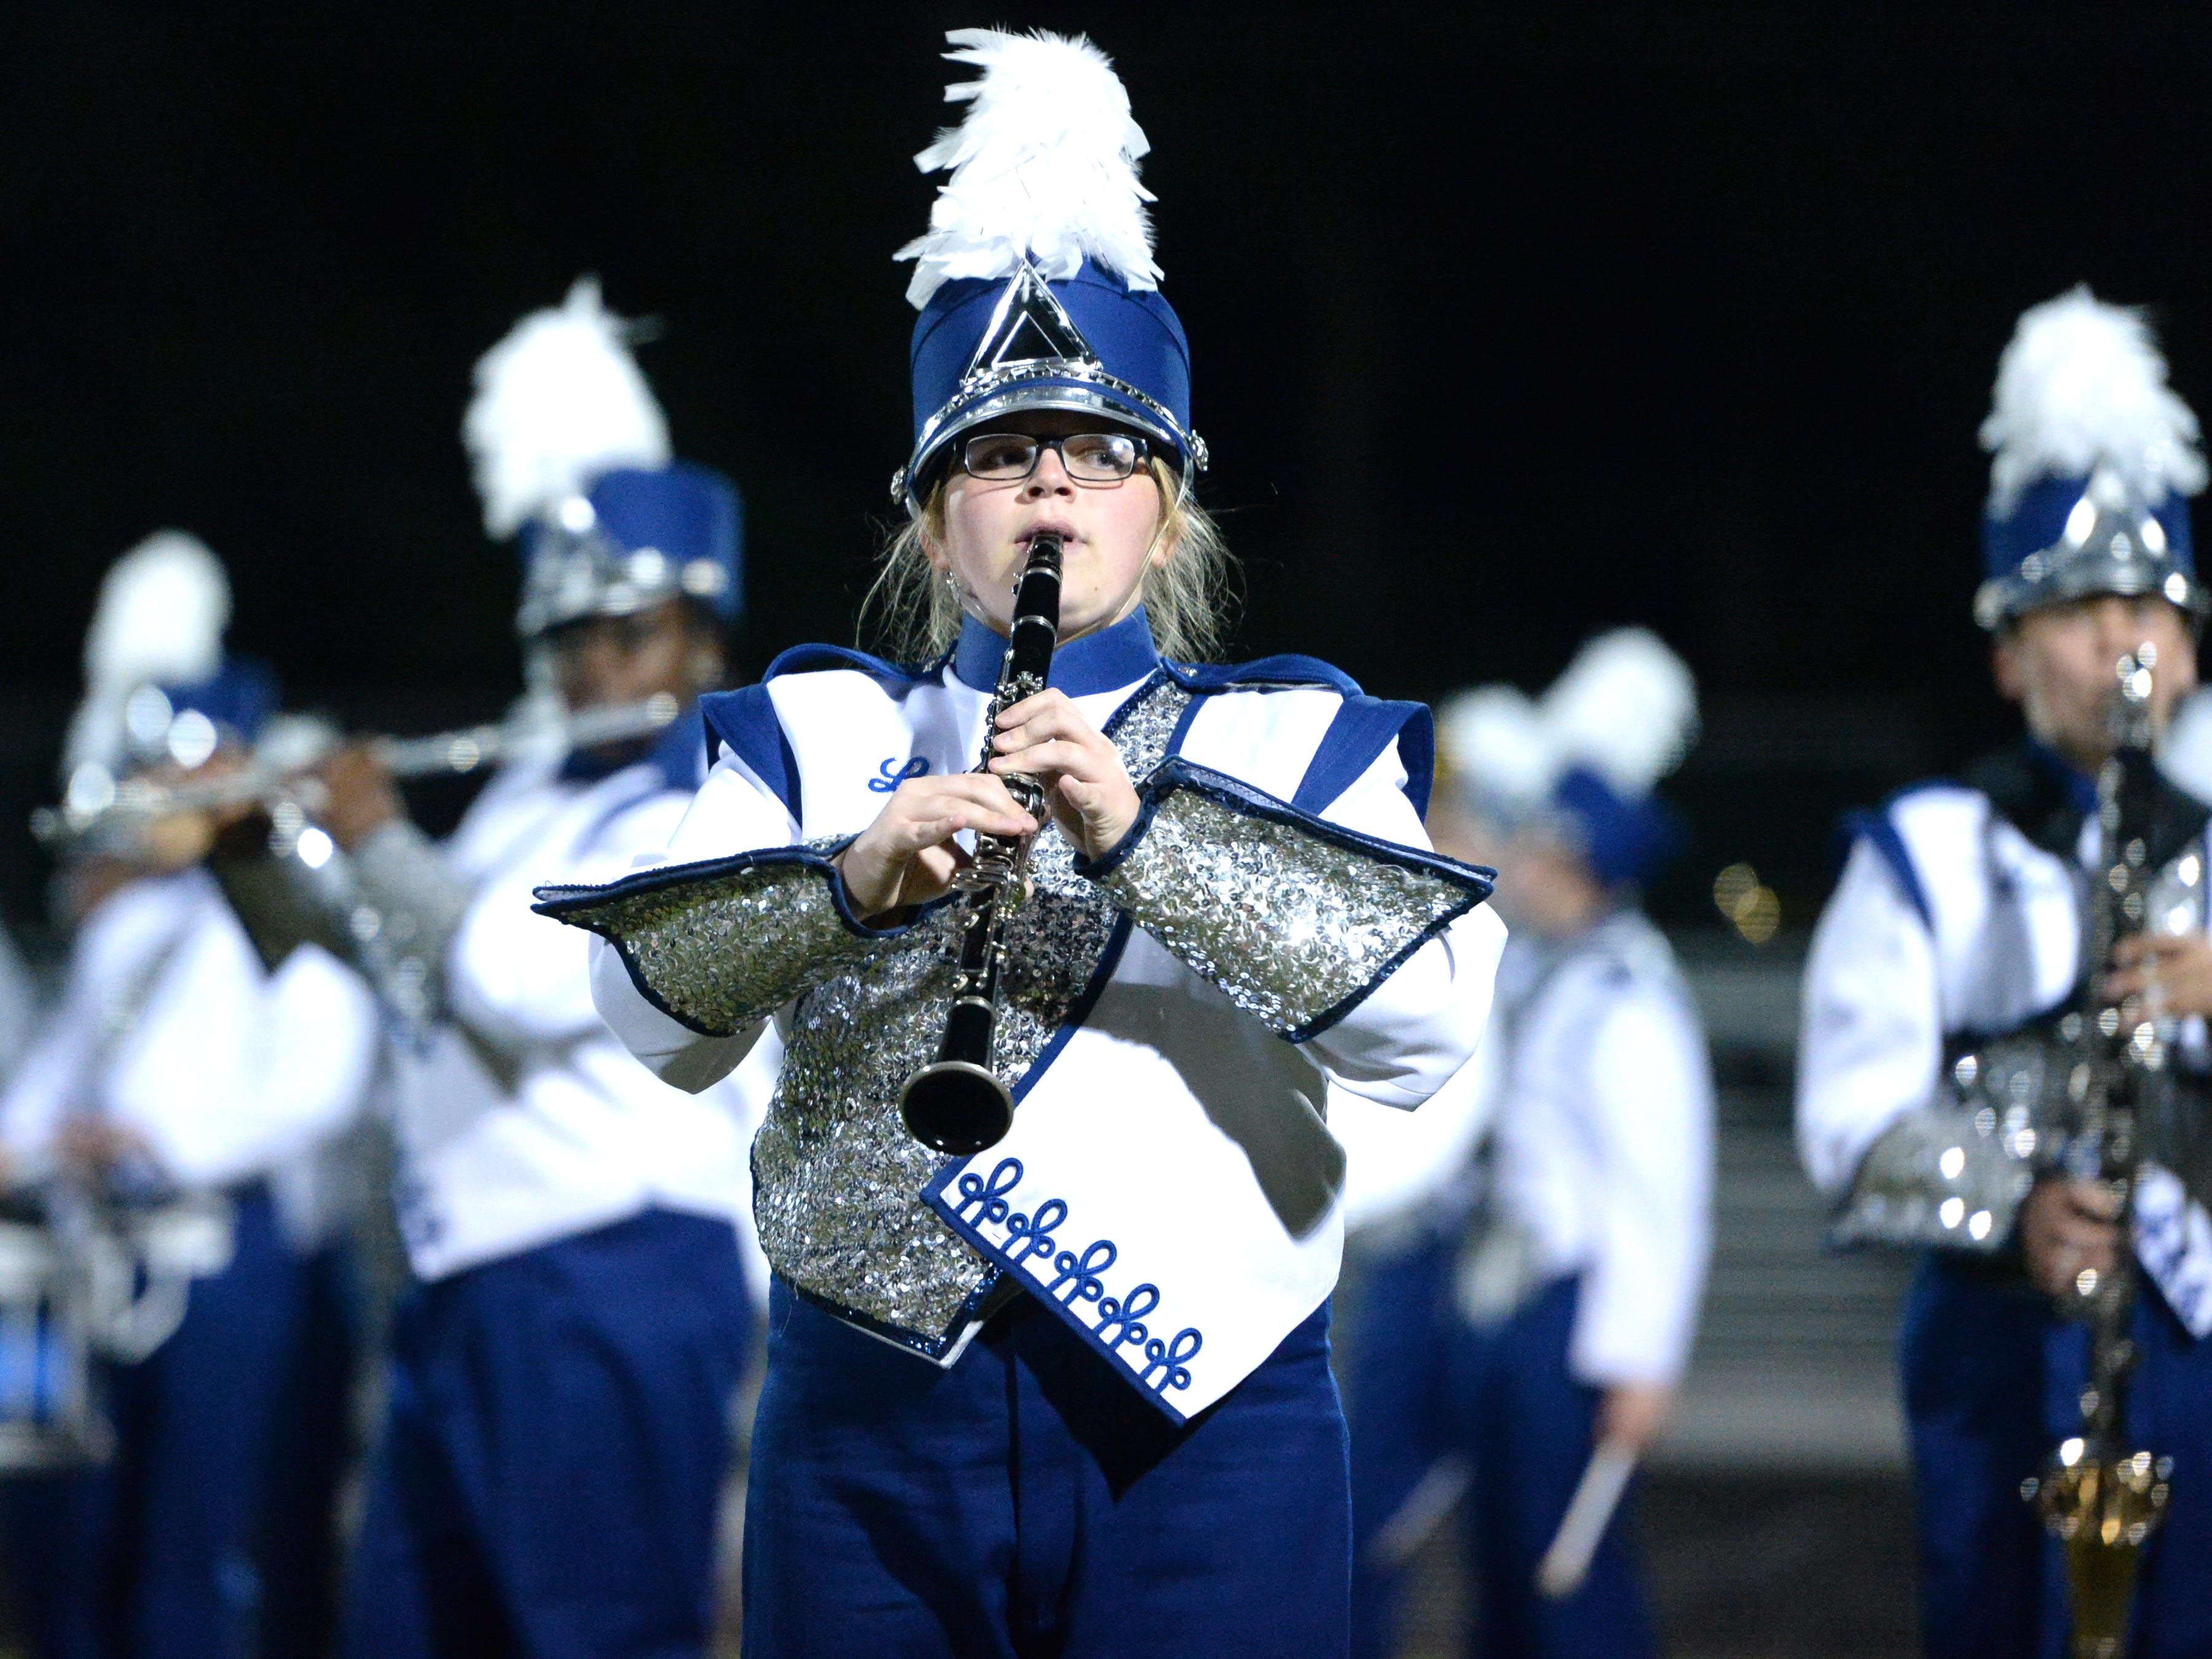 The Robert E. Lee High School band performs during the Valley Showcase Tuesday at Riverheads.